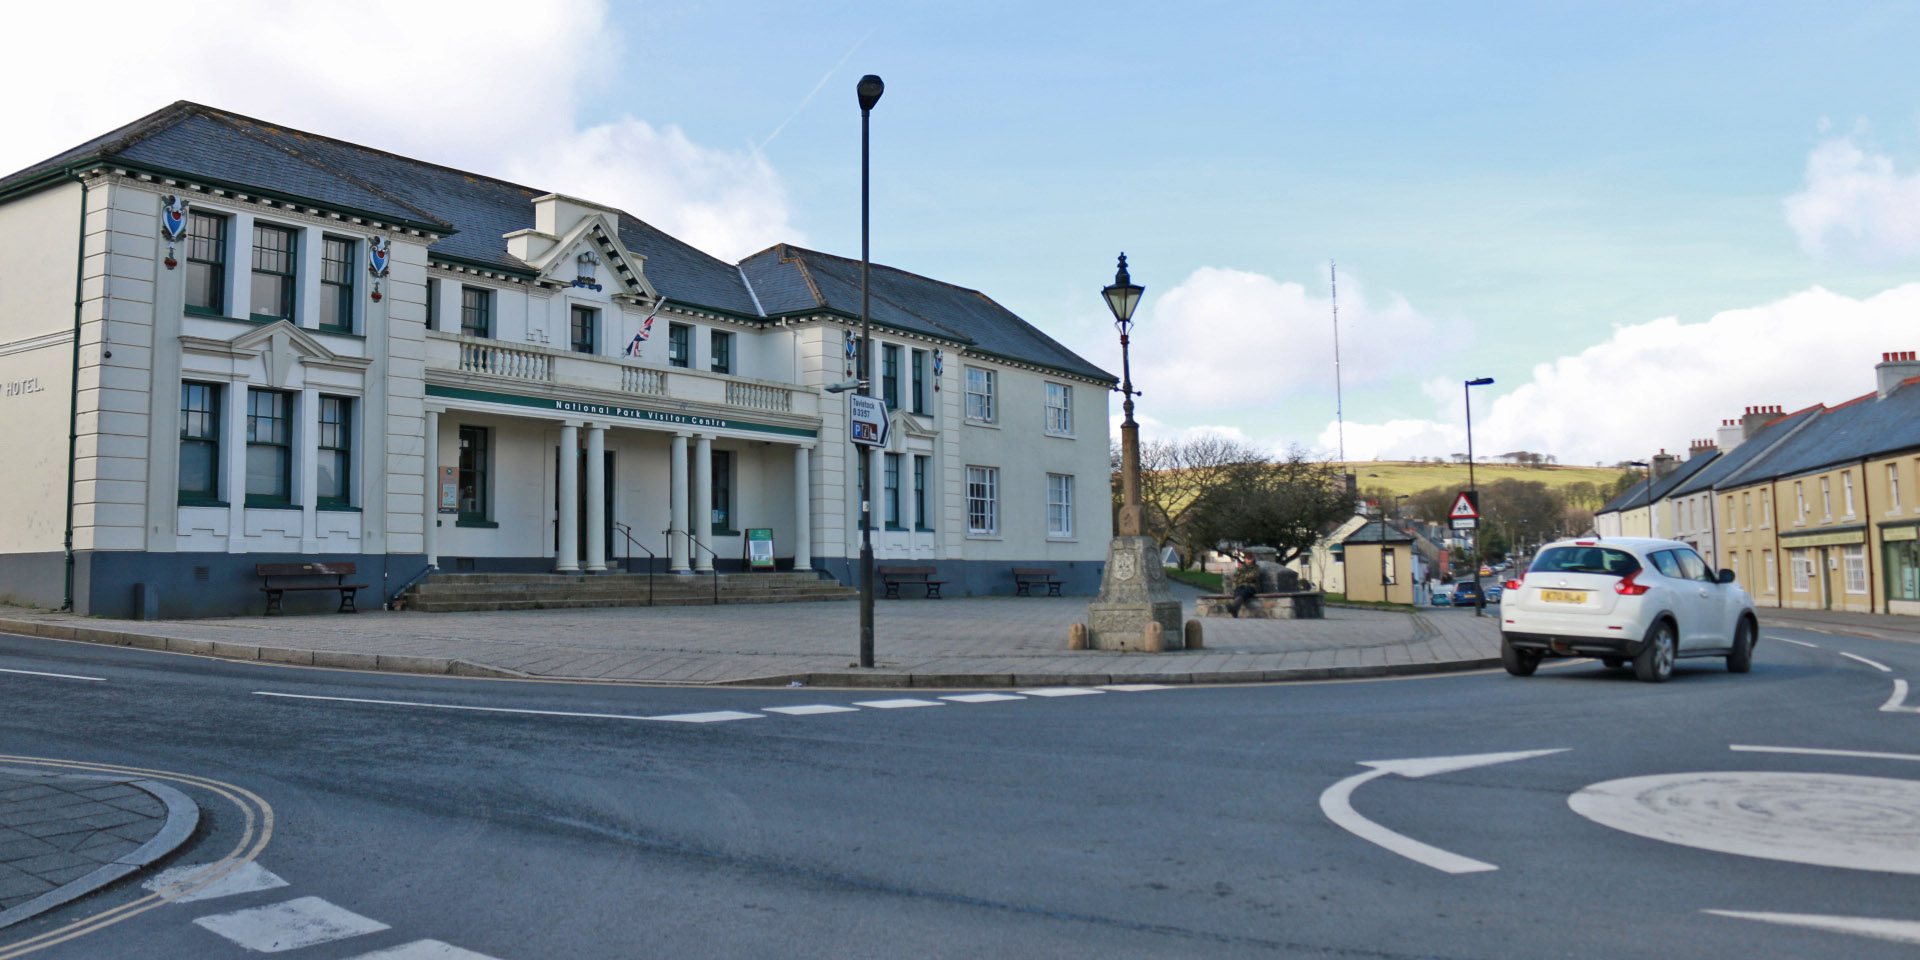 Street view of Princetown Visitor Centre